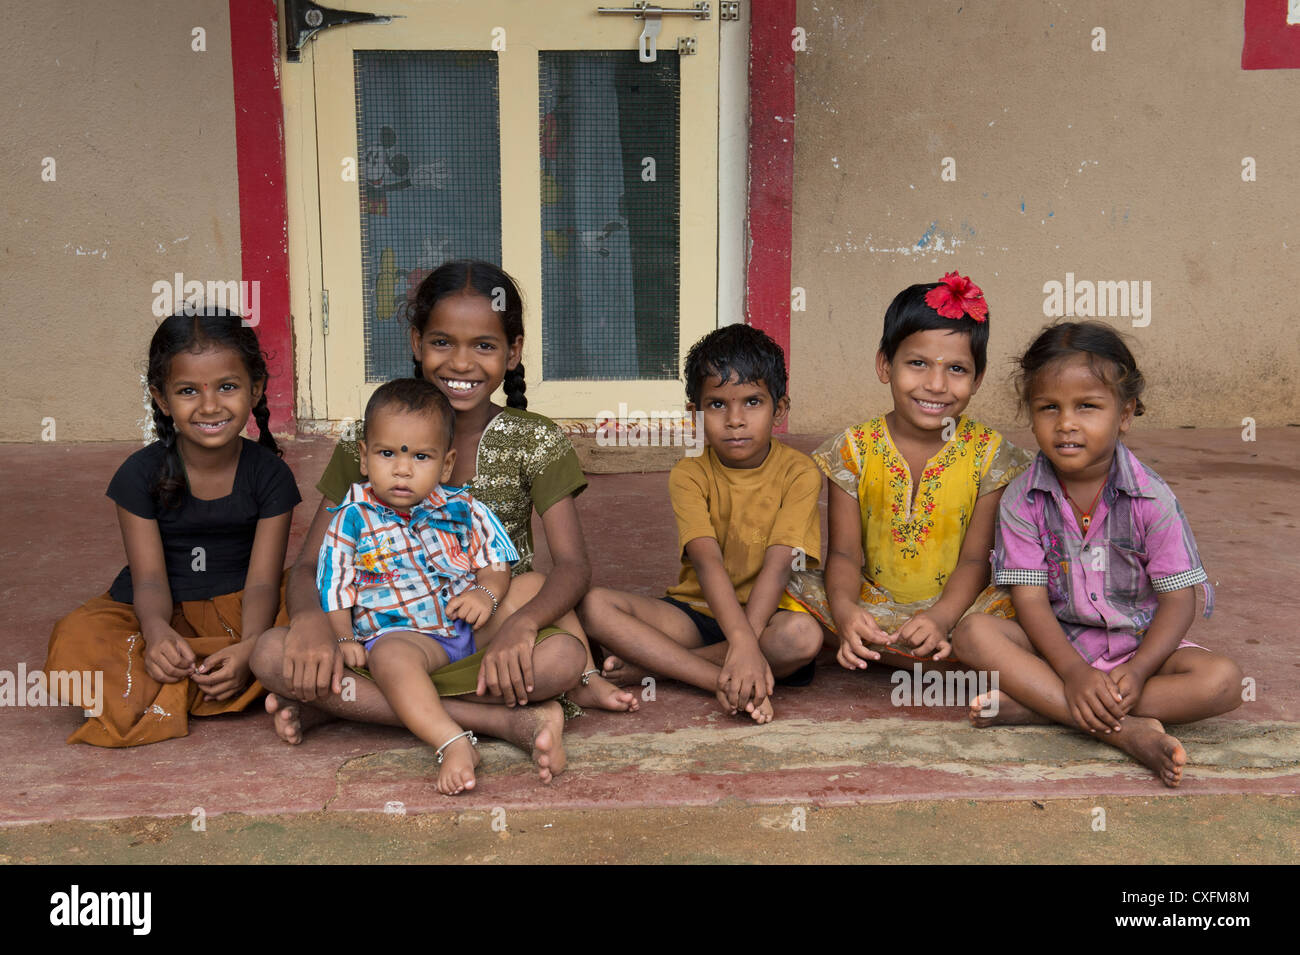 Happy young rural Indian village children sitting in front of a house smiling. Andhra Pradesh, India - Stock Image